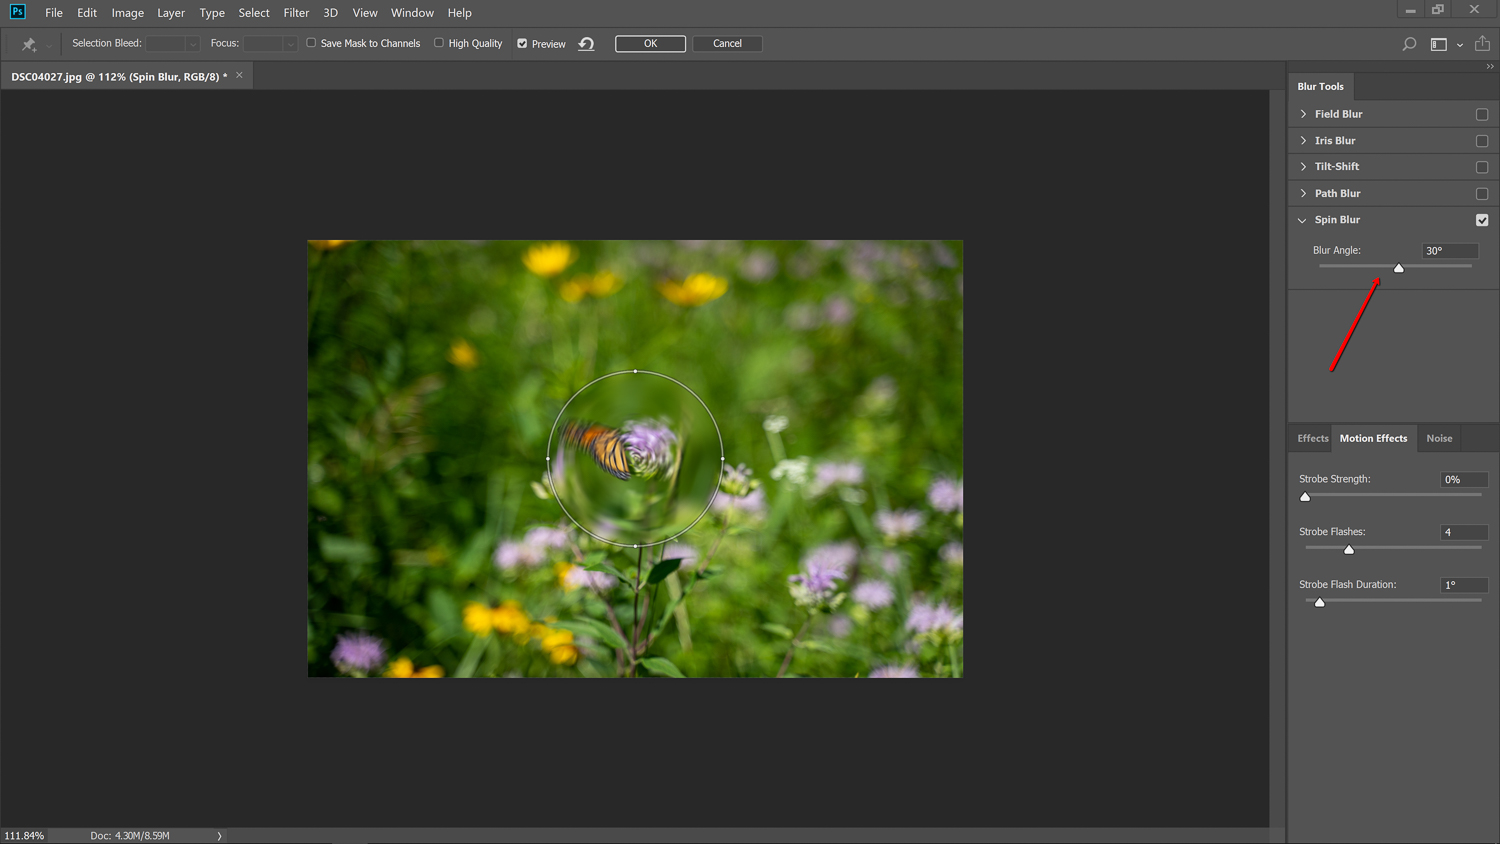 blurring corner - How to simulate a Swirly Bokeh in Photoshop